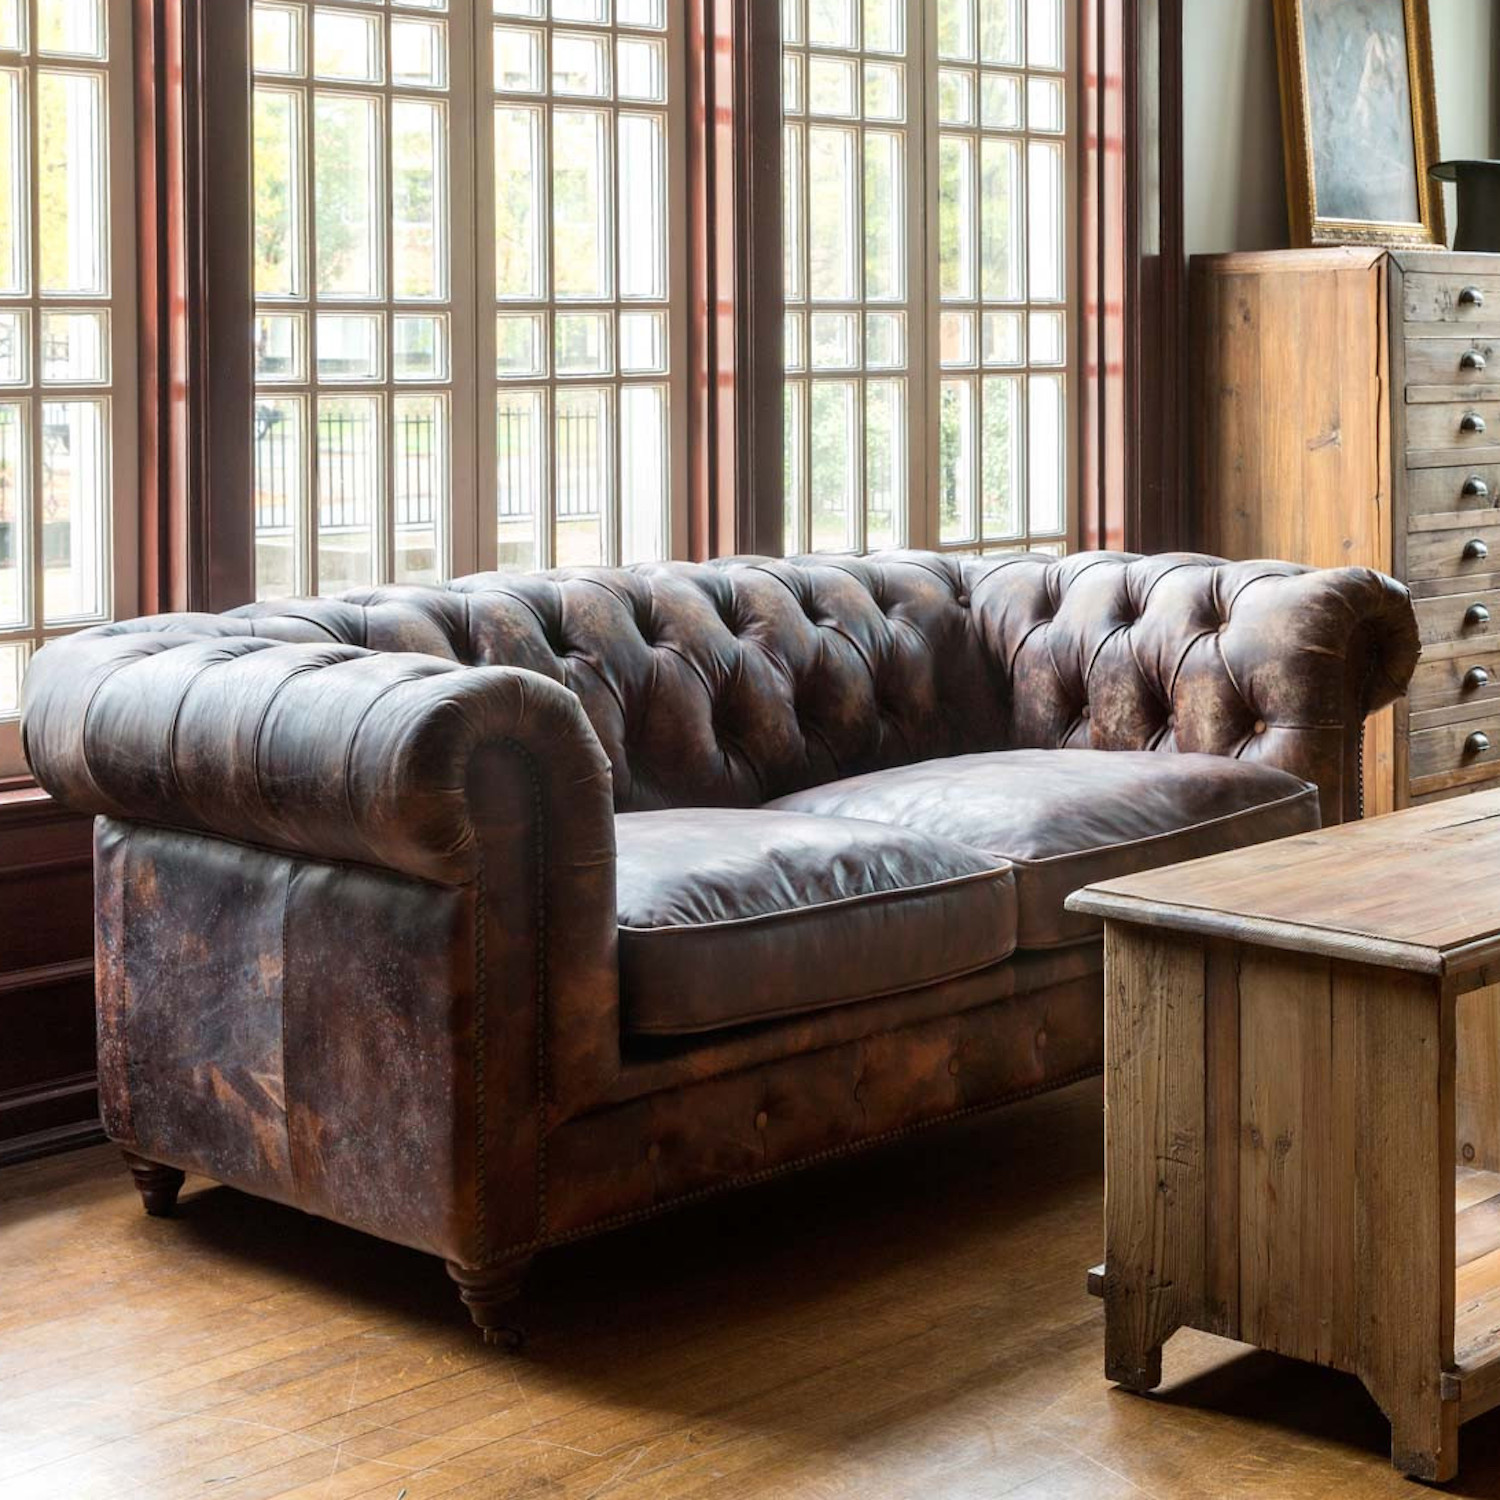 Churchill Brown Leather Club Chair Sofa With Vintage Distressed Matte Finish The Kings Bay